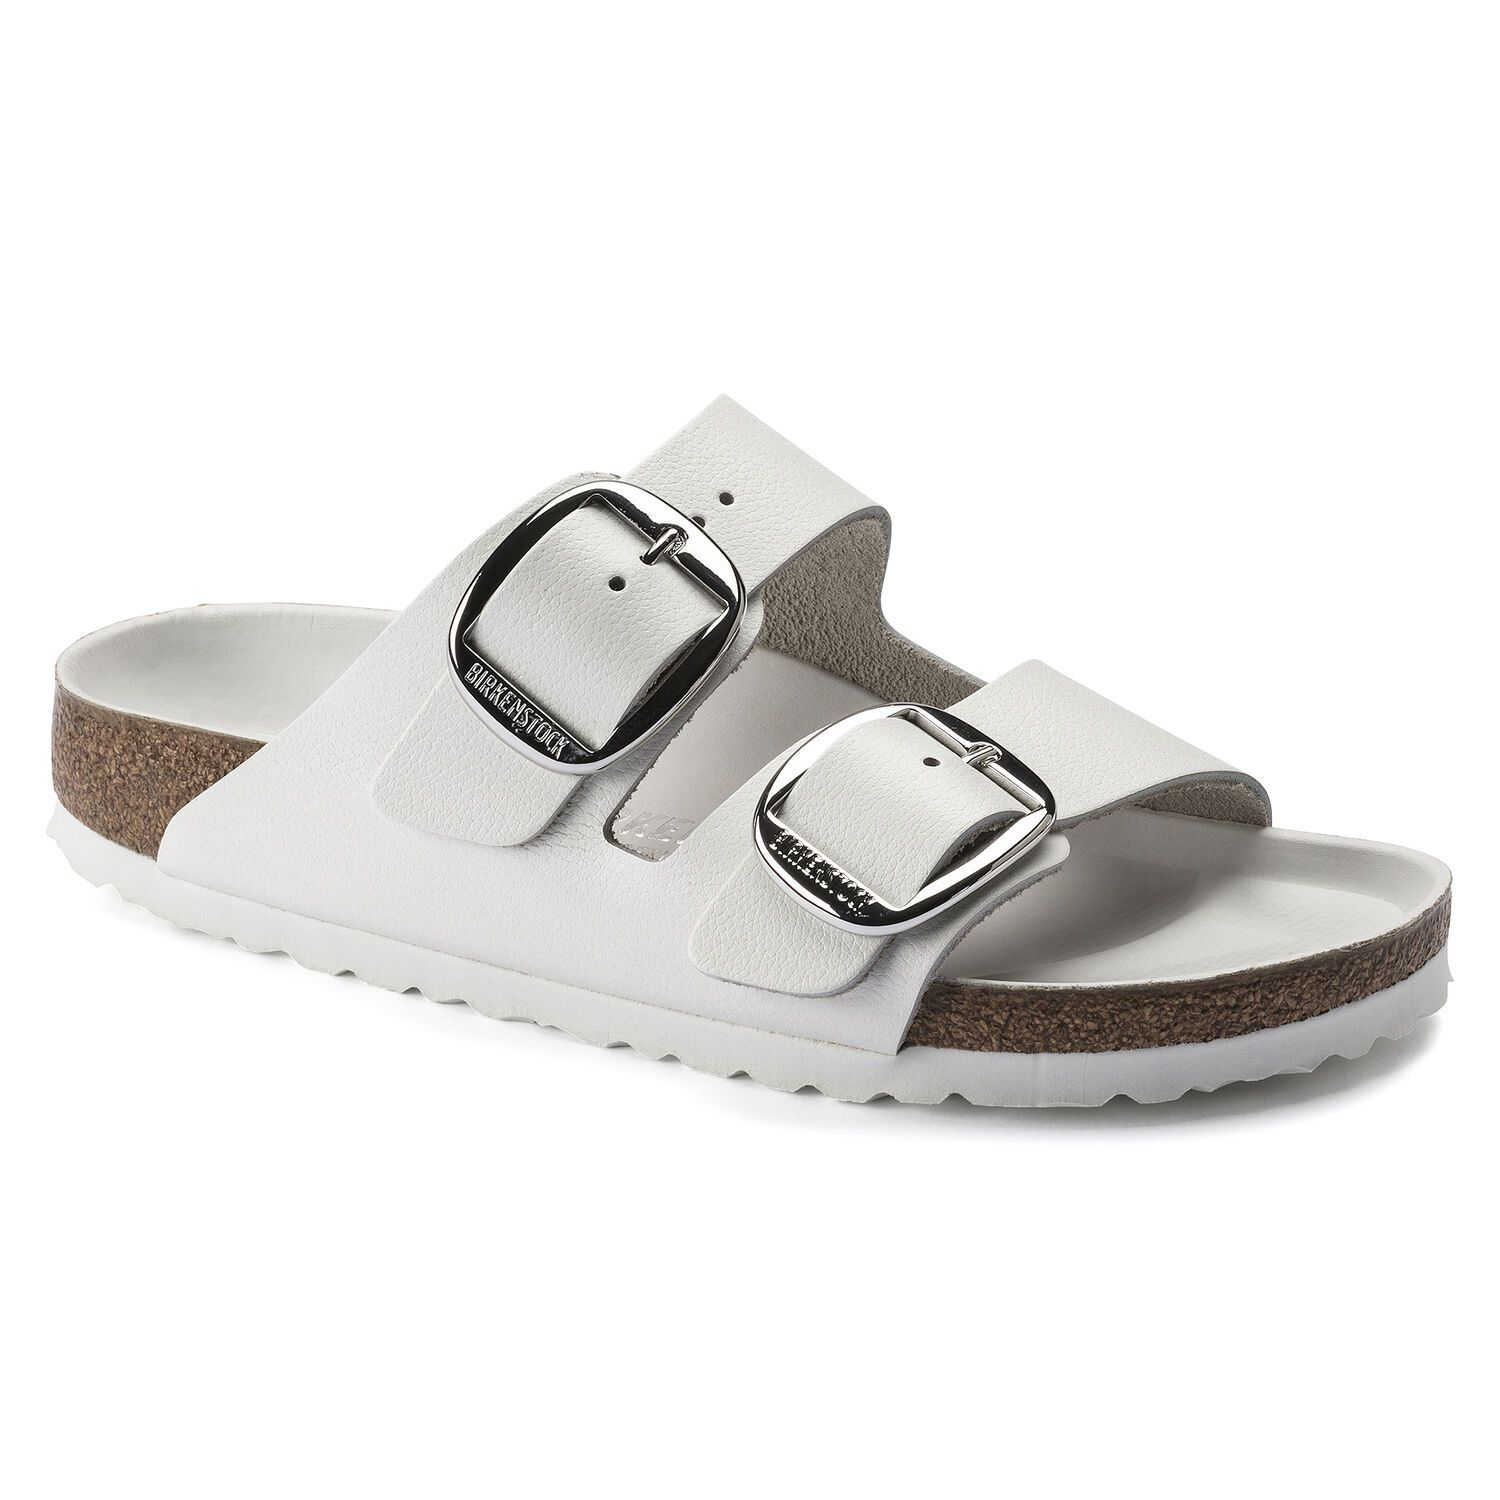 Birkenstock Arizona Big Buckle NL White HEX Narrow